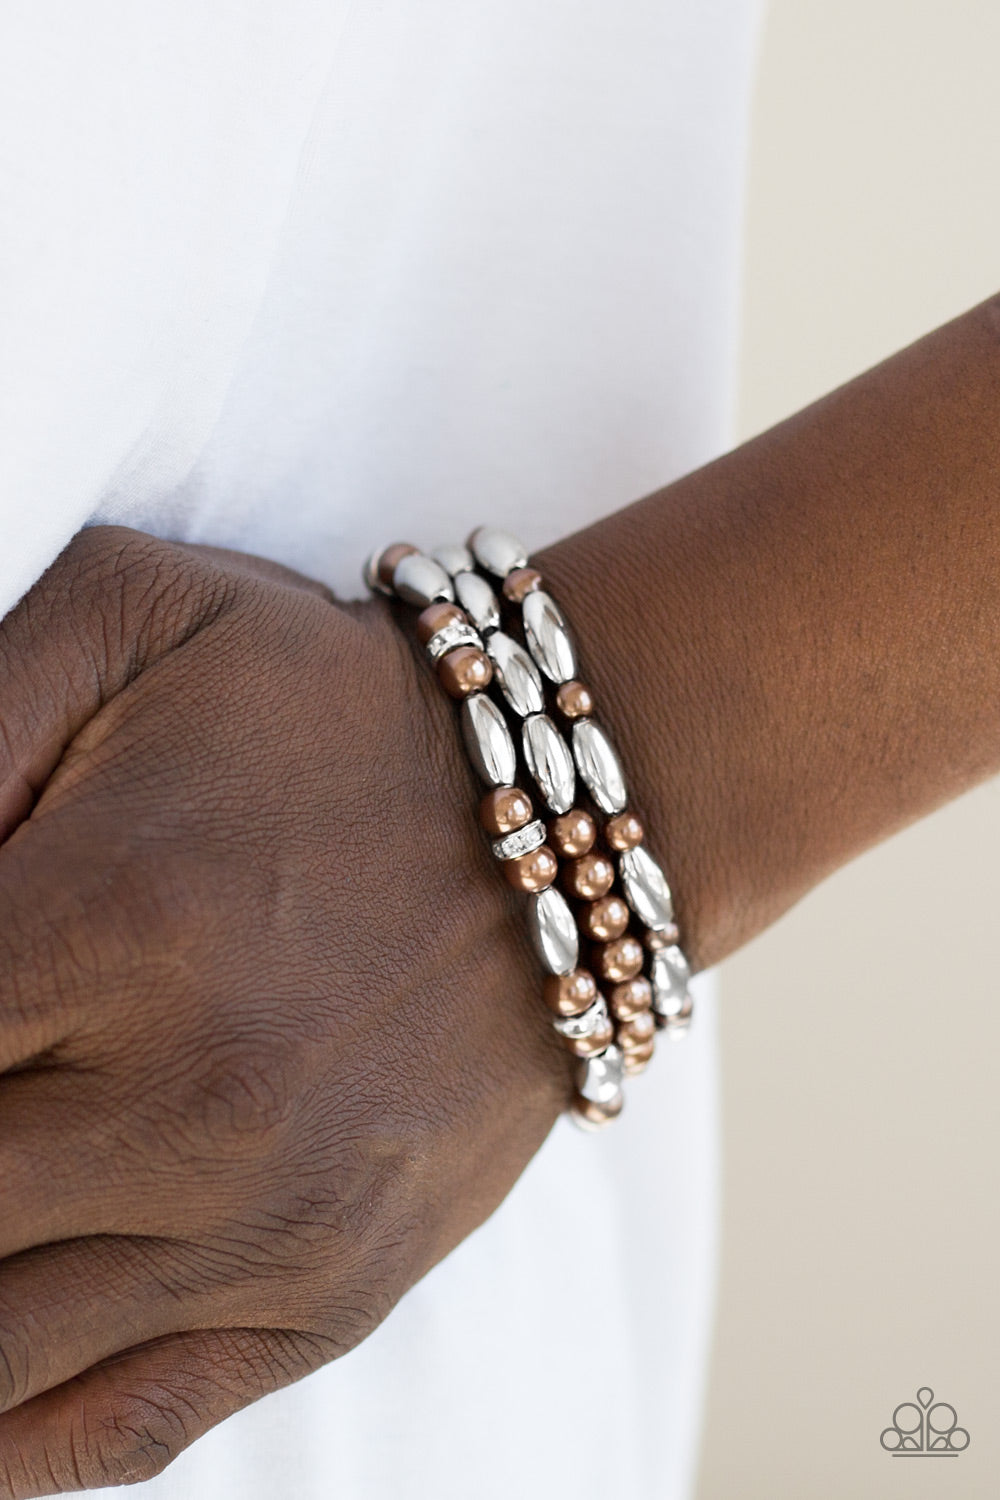 Paparazzi - Chic Contender - Brown Bracelet - Classy Jewels by Linda